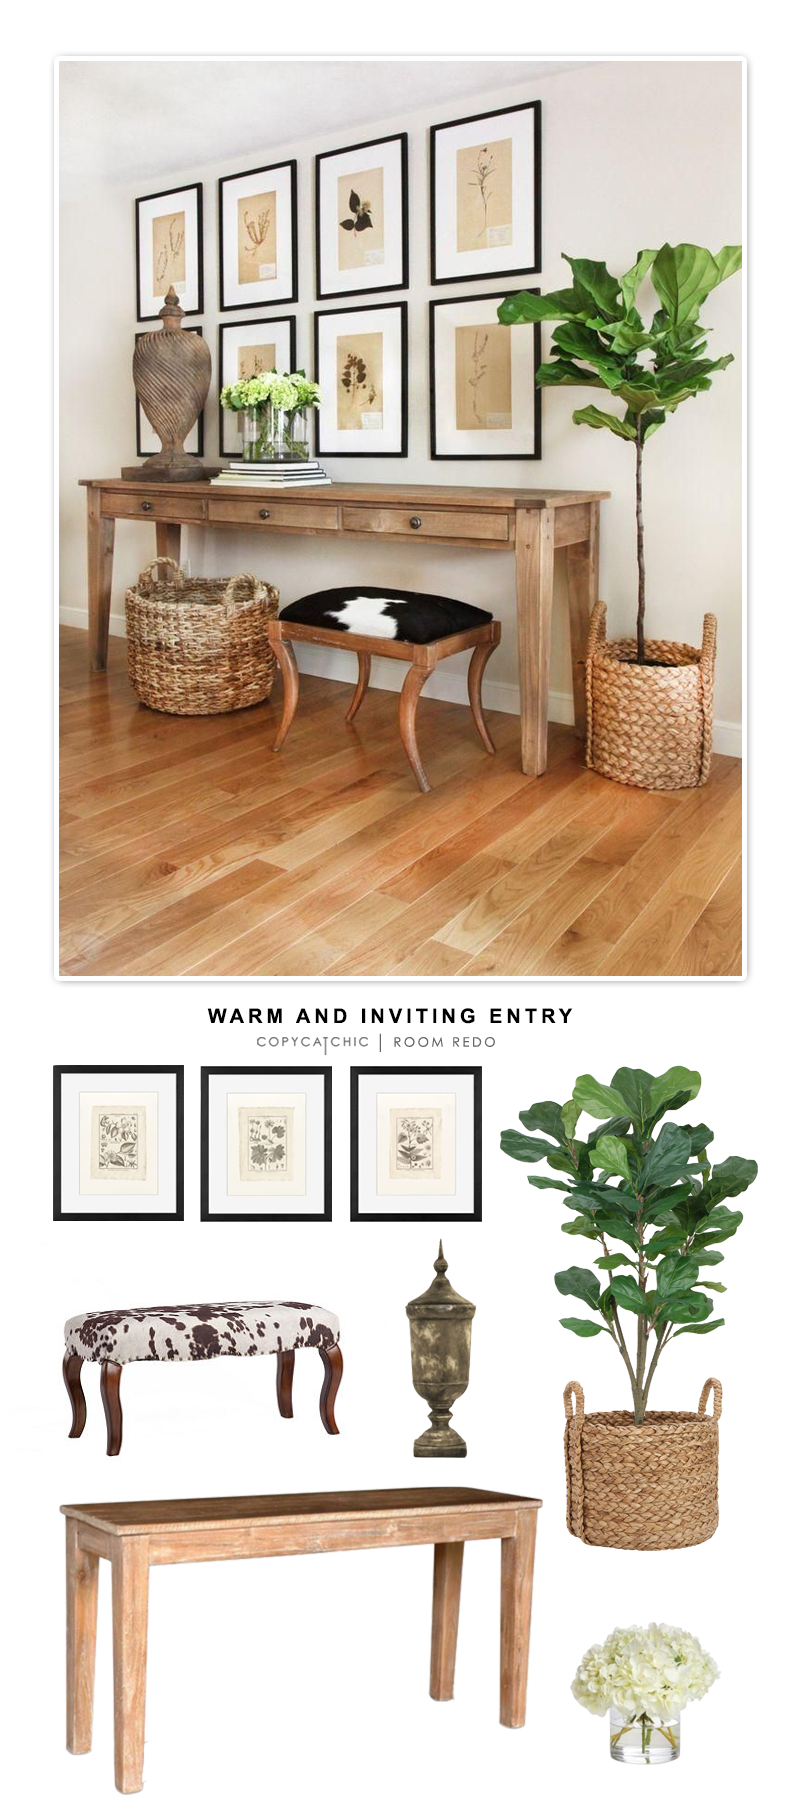 a warm and inviting entryway designed by kelly mcguill and recreated for less than 2000 for copy cat chic by audreycdyer